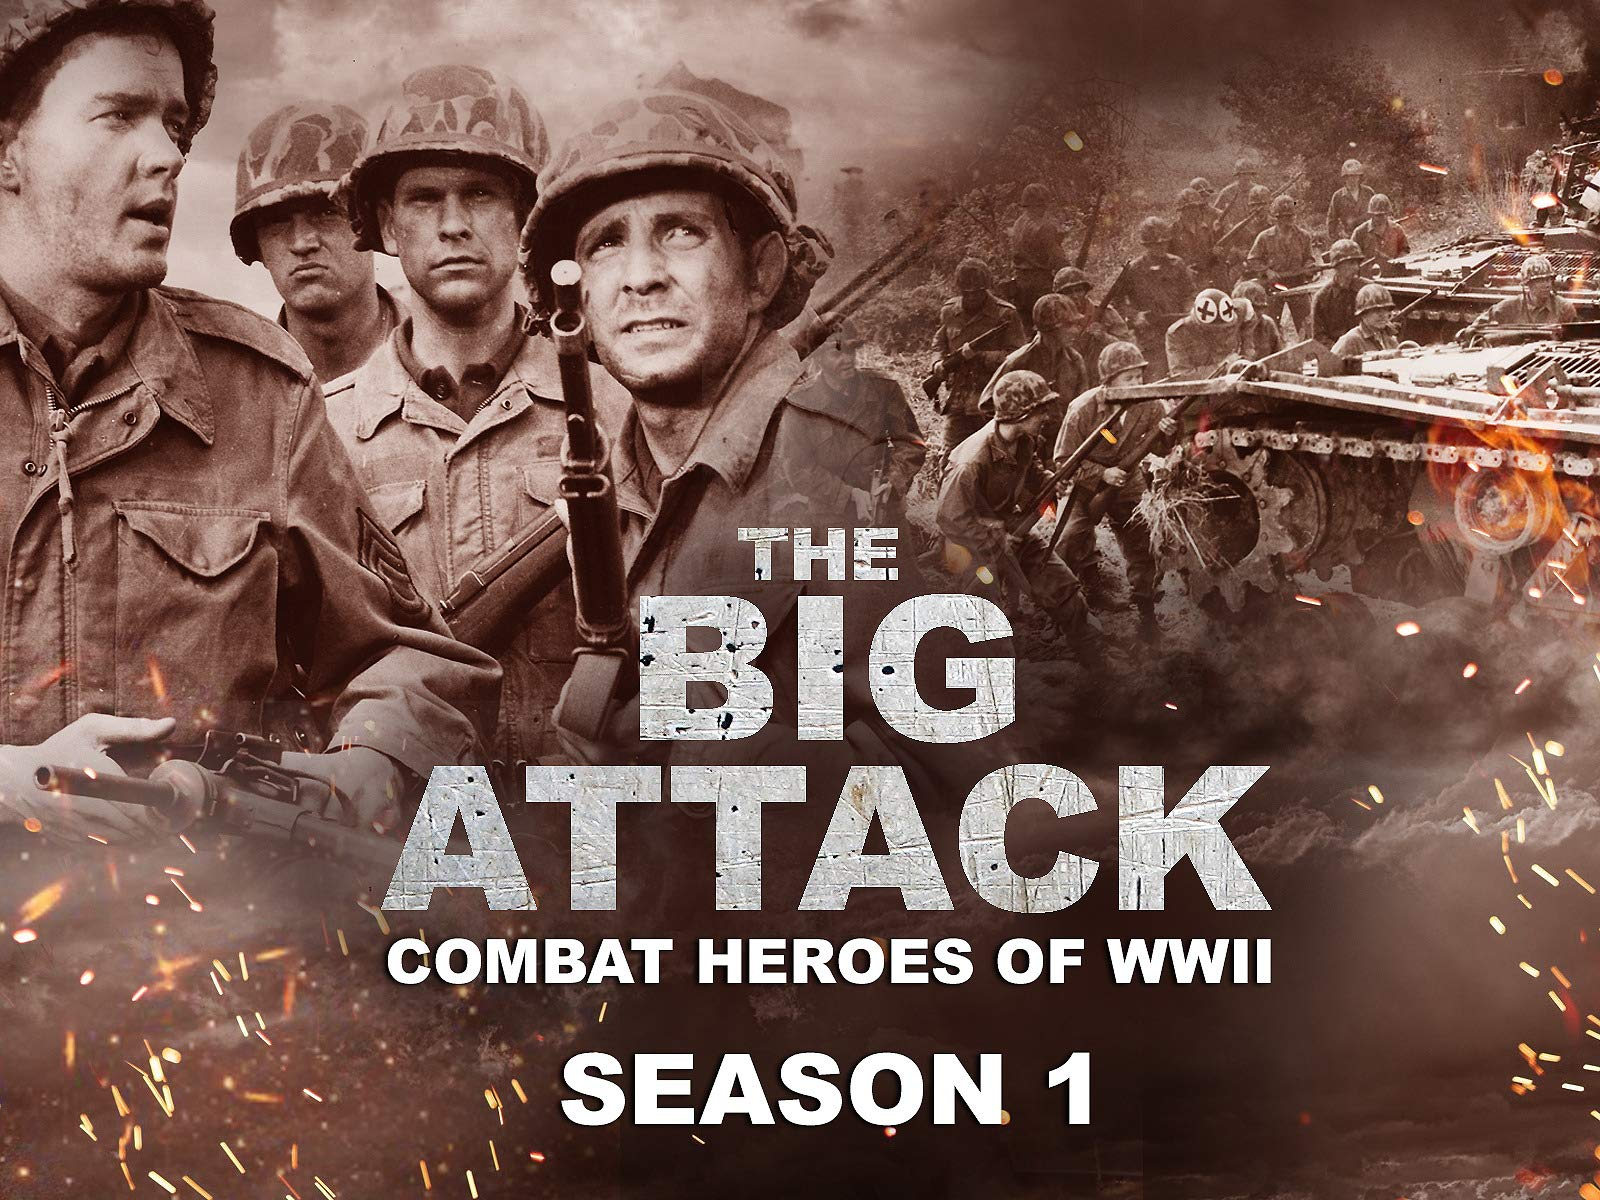 The Big Attack - Combat Heroes of WWII - Season 1